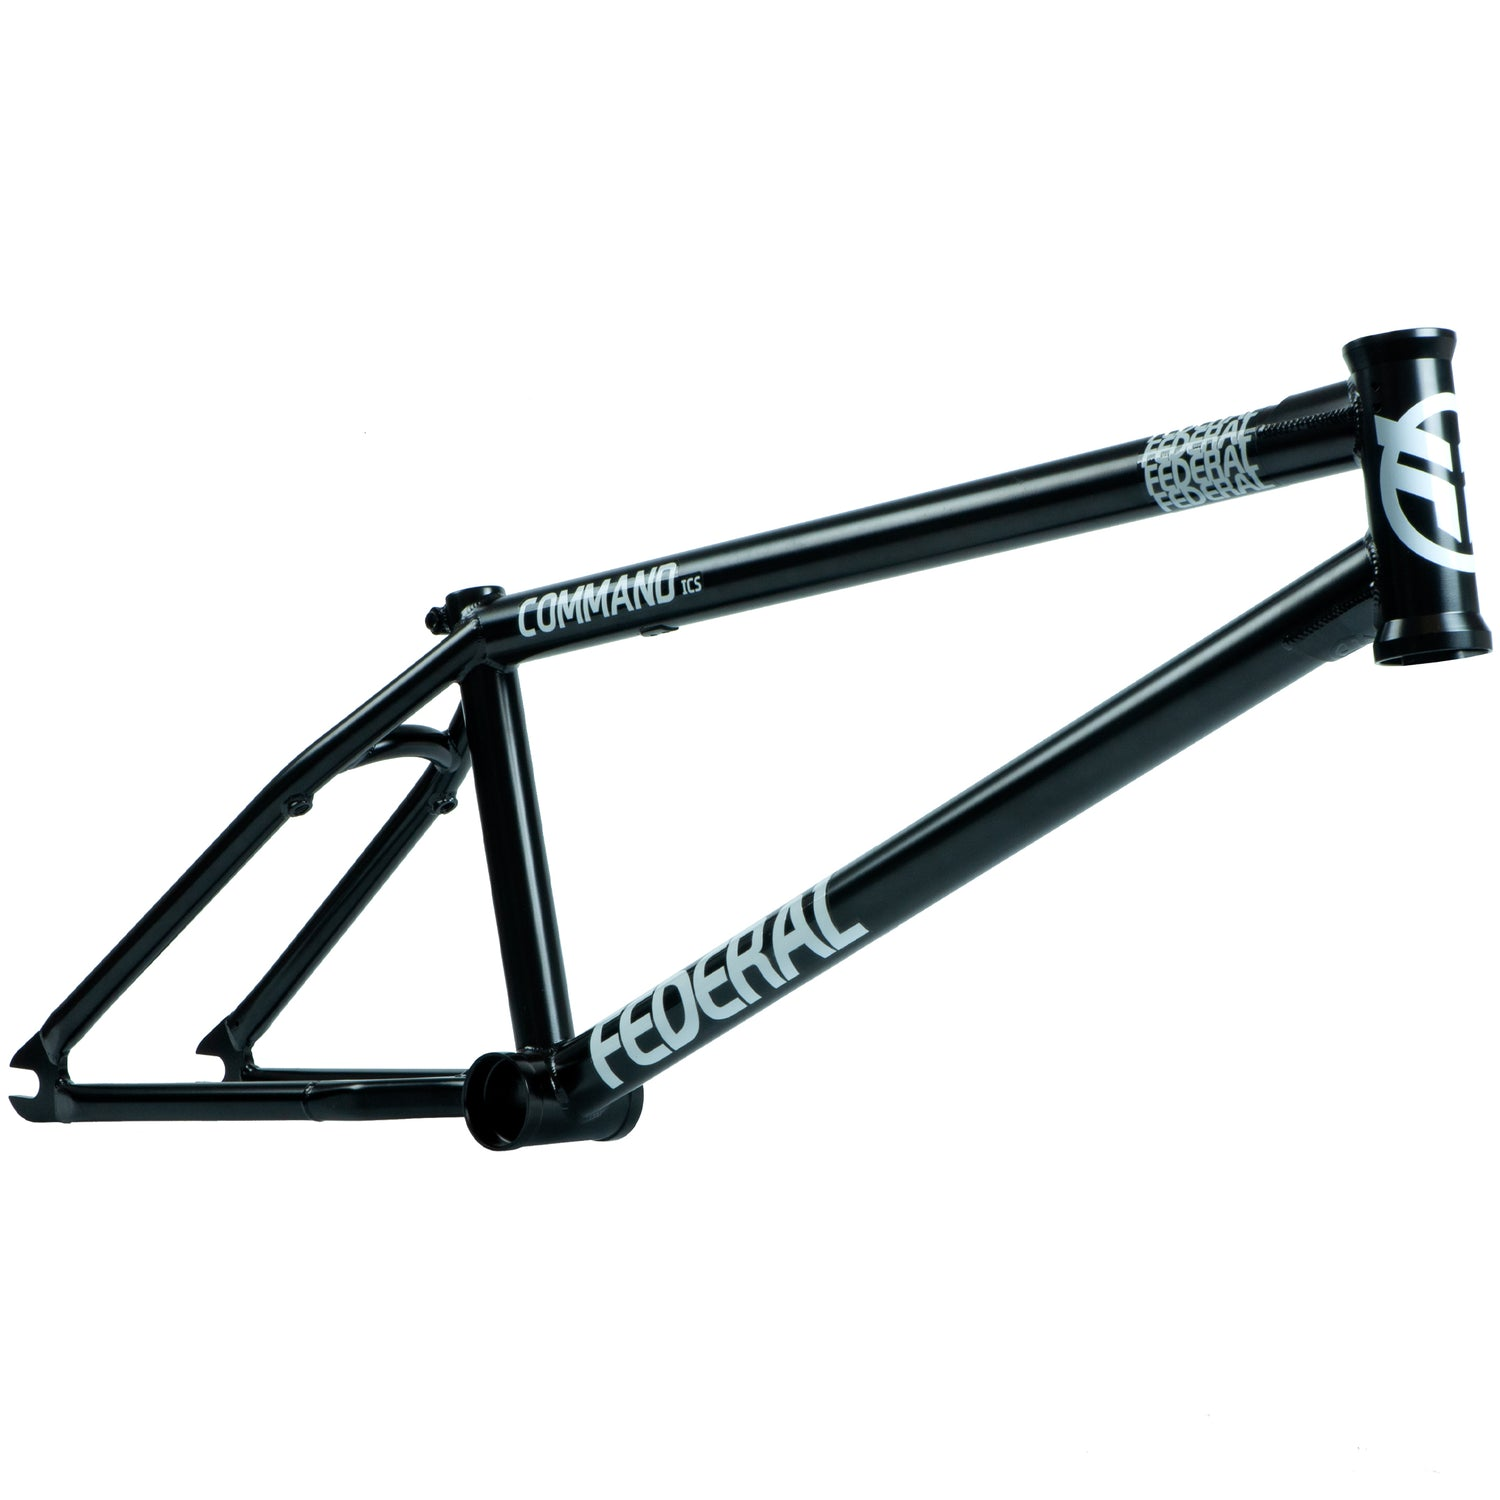 Federal Command ICS Frame - ED Black | BMX